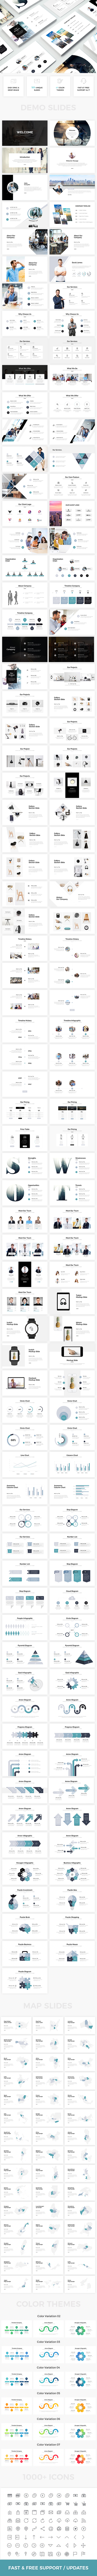 GraphicRiver Efffective Business Google Slide Template 2017 20668003